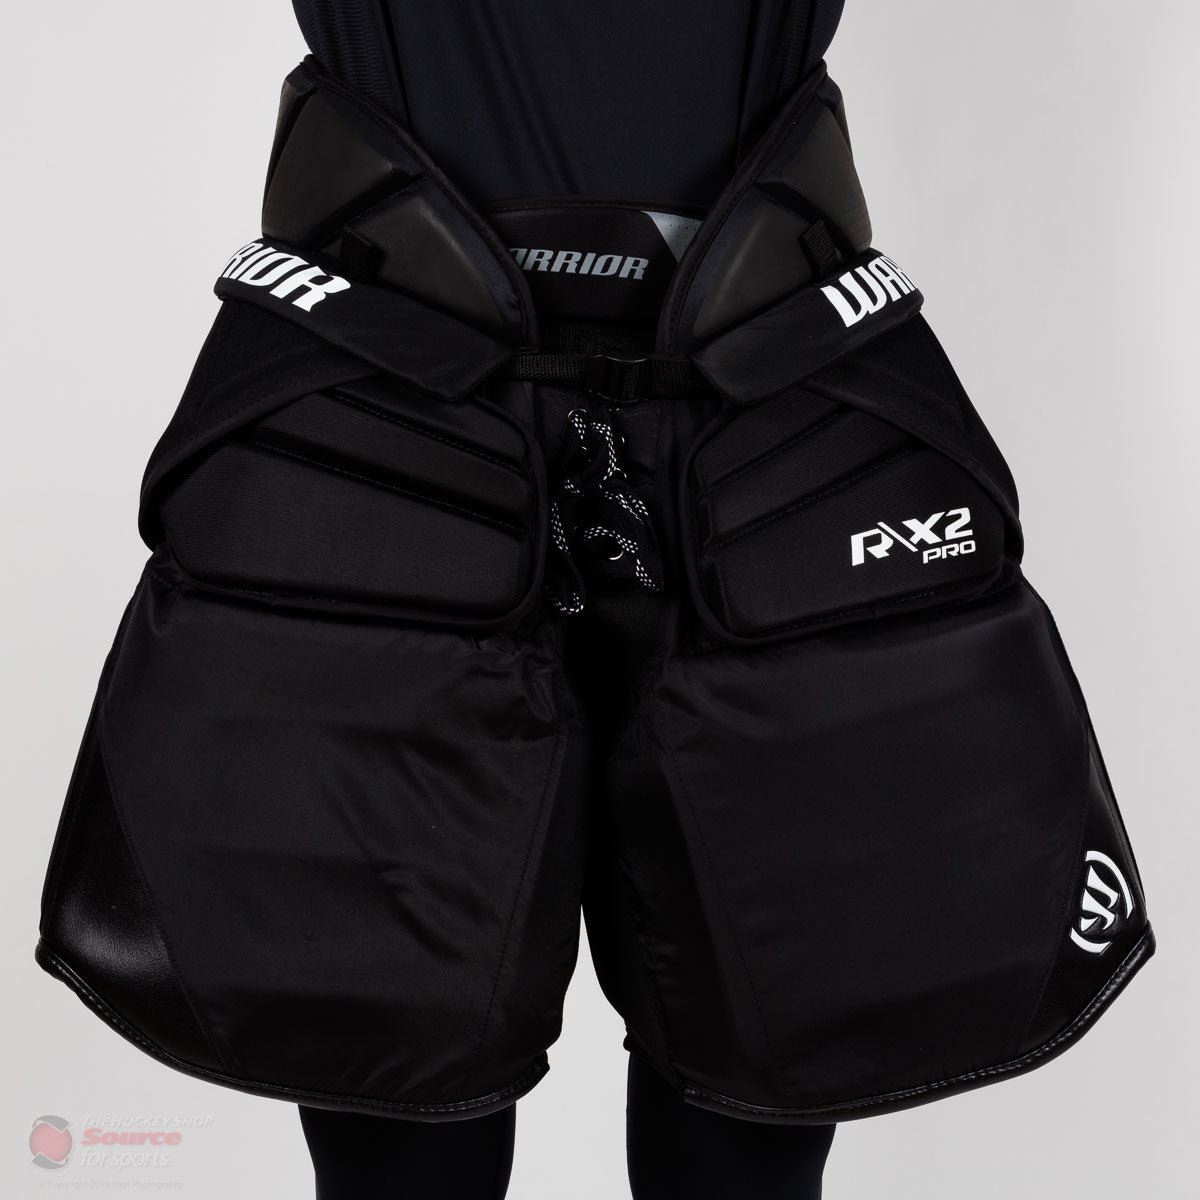 Warrior RX2 Pro Goal Pants